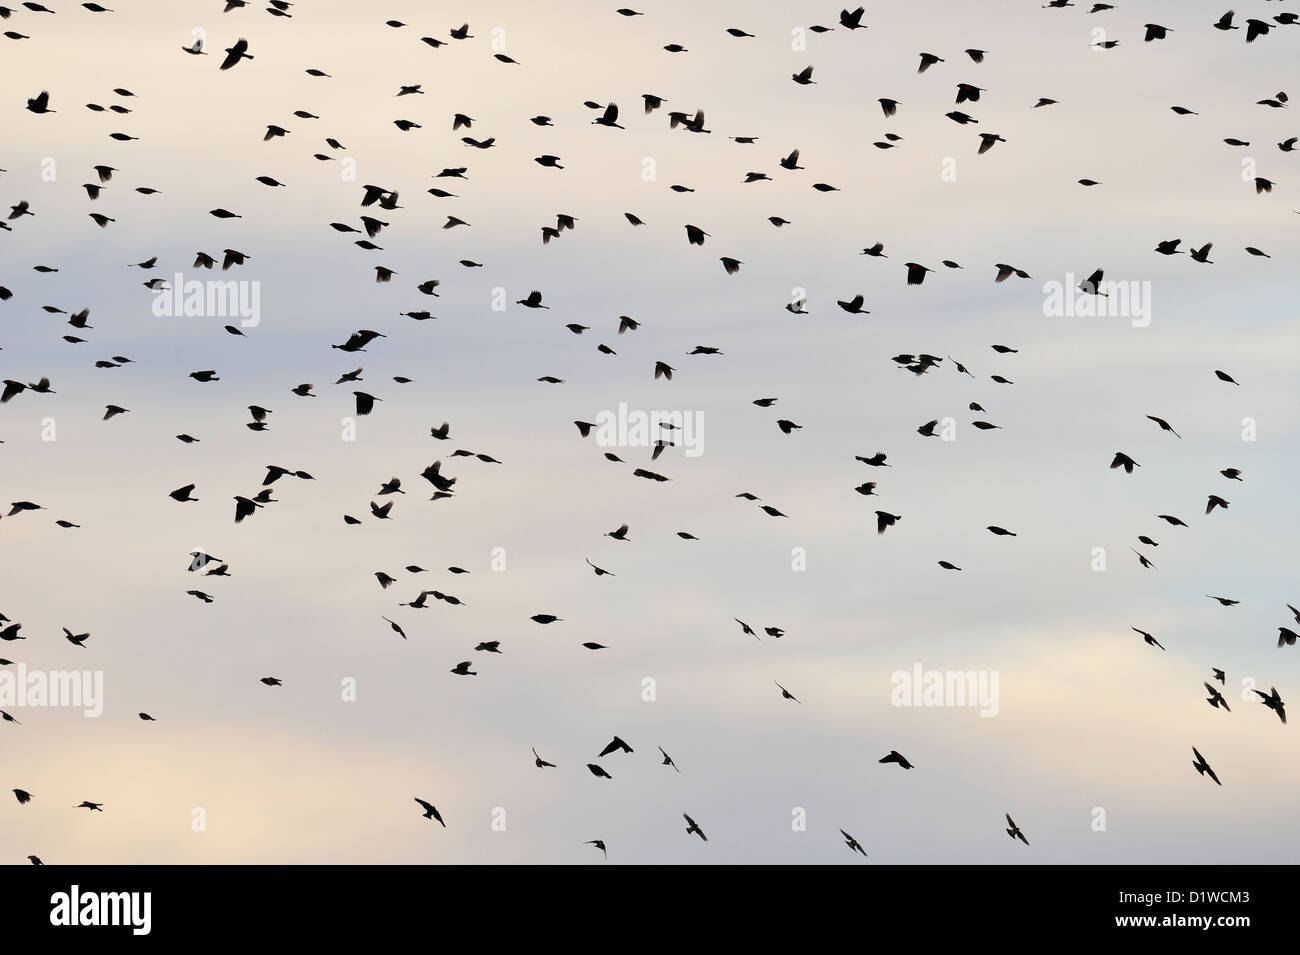 A flock of songbirds (red-wing blackbirds) in flight, Bosque del Apache NWR, New Mexico, USA - Stock Image